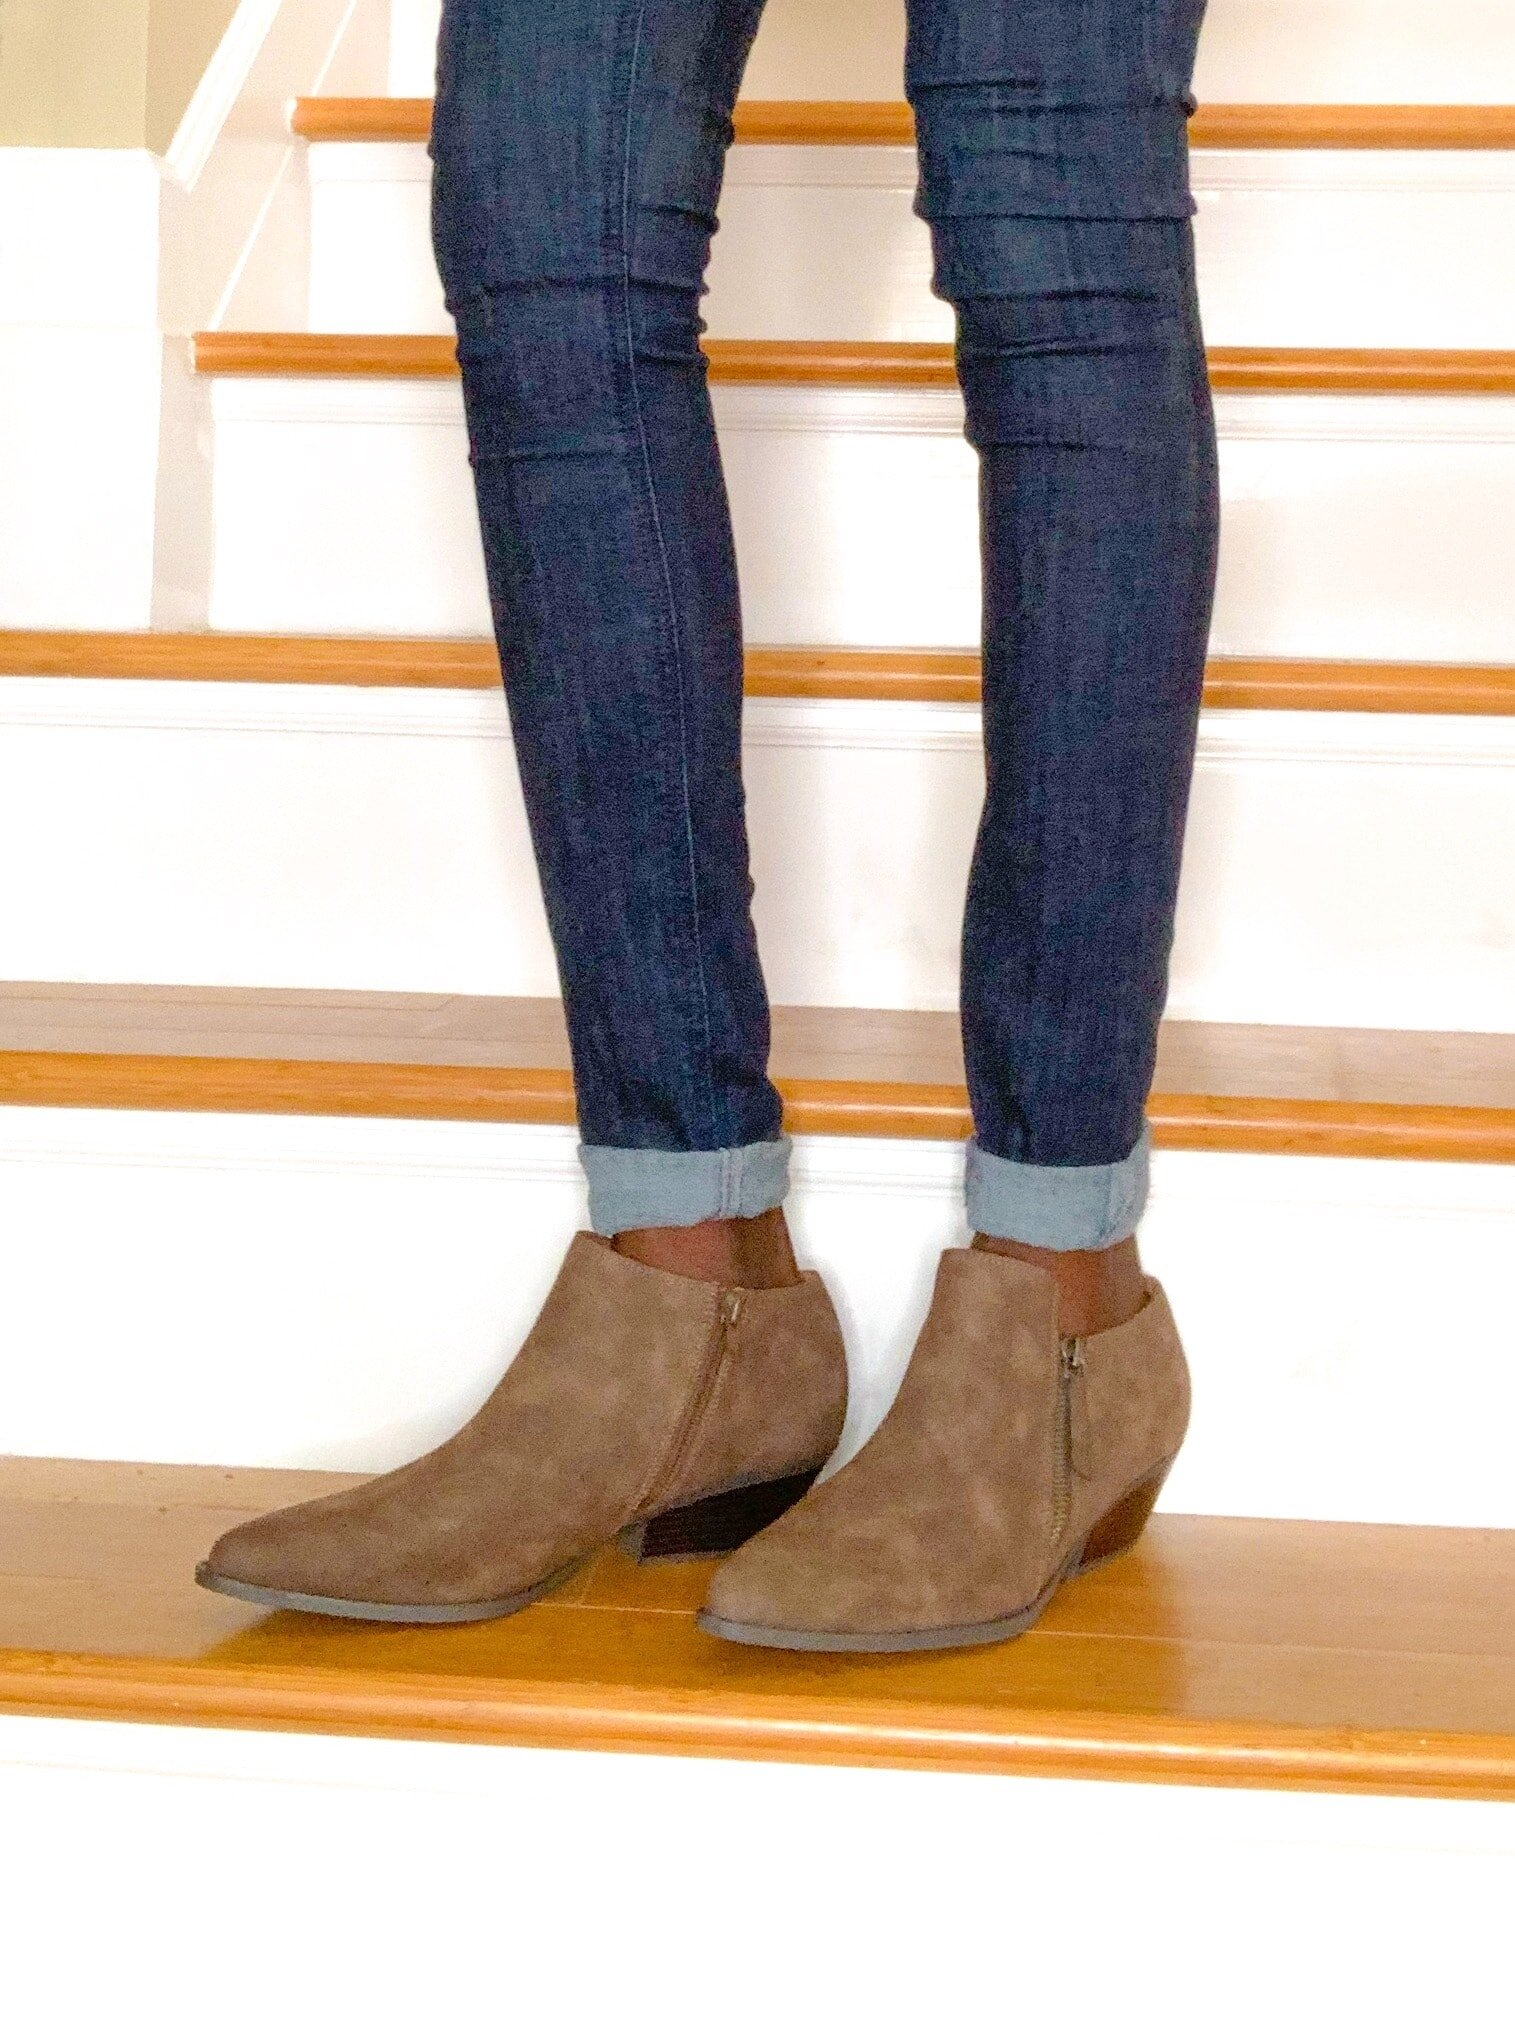 rolled jeans and low boots-min.jpg